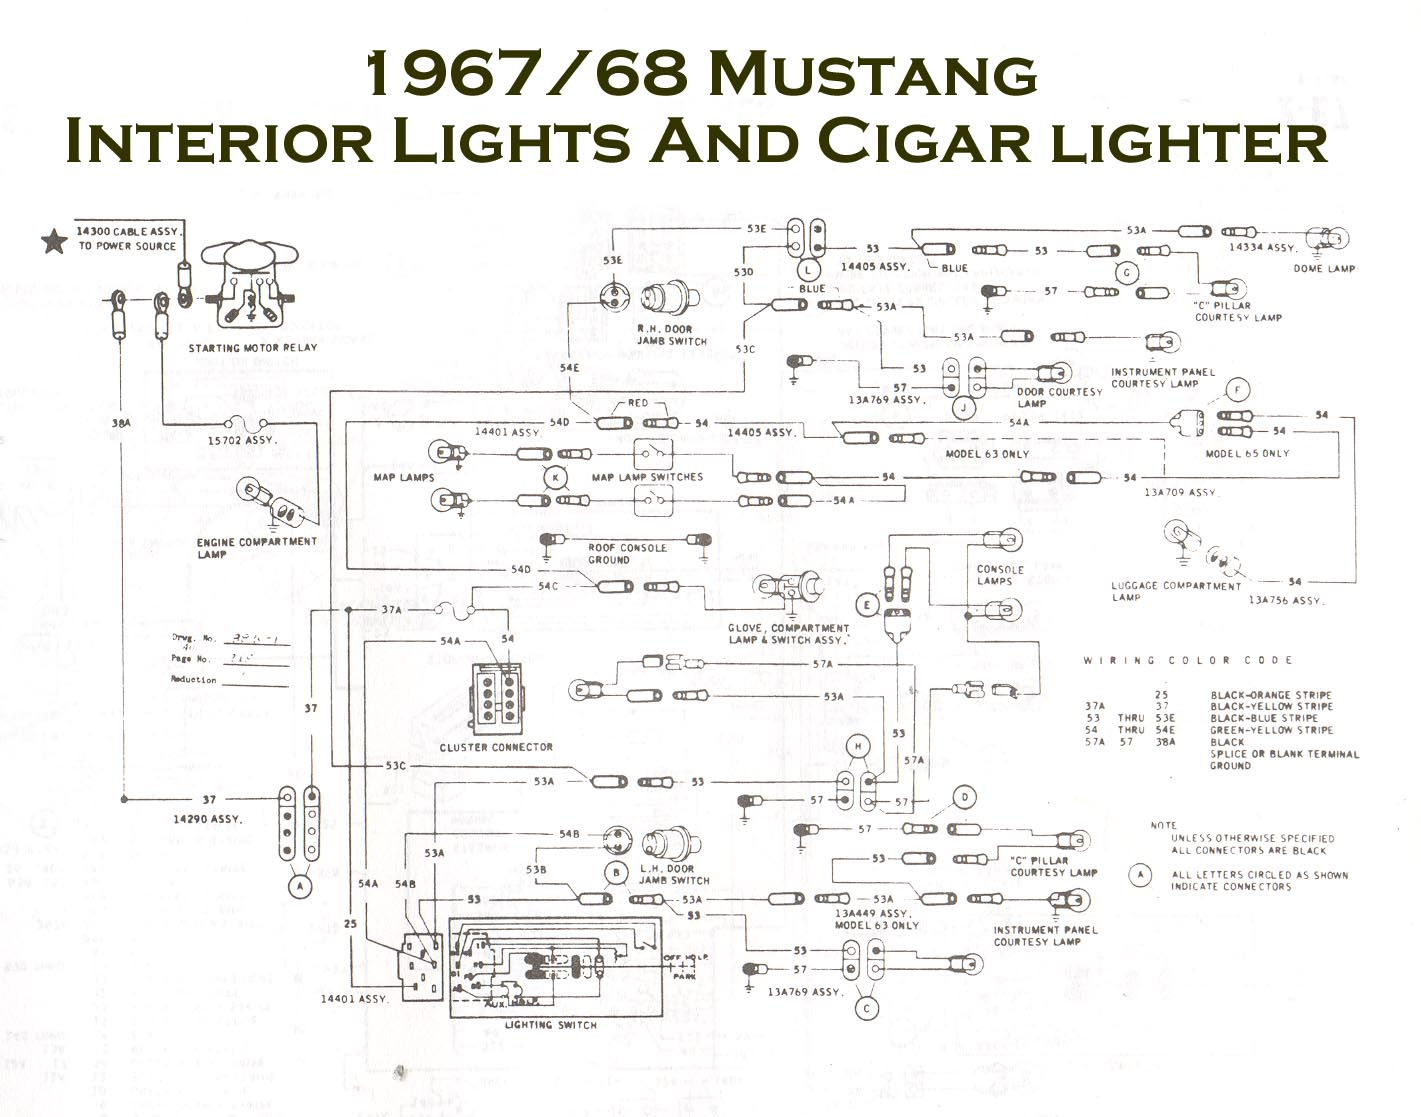 1968 Mustang Wiring Diagram Free Guide And Troubleshooting Of 69 Chevelle For A Console Images Gallery